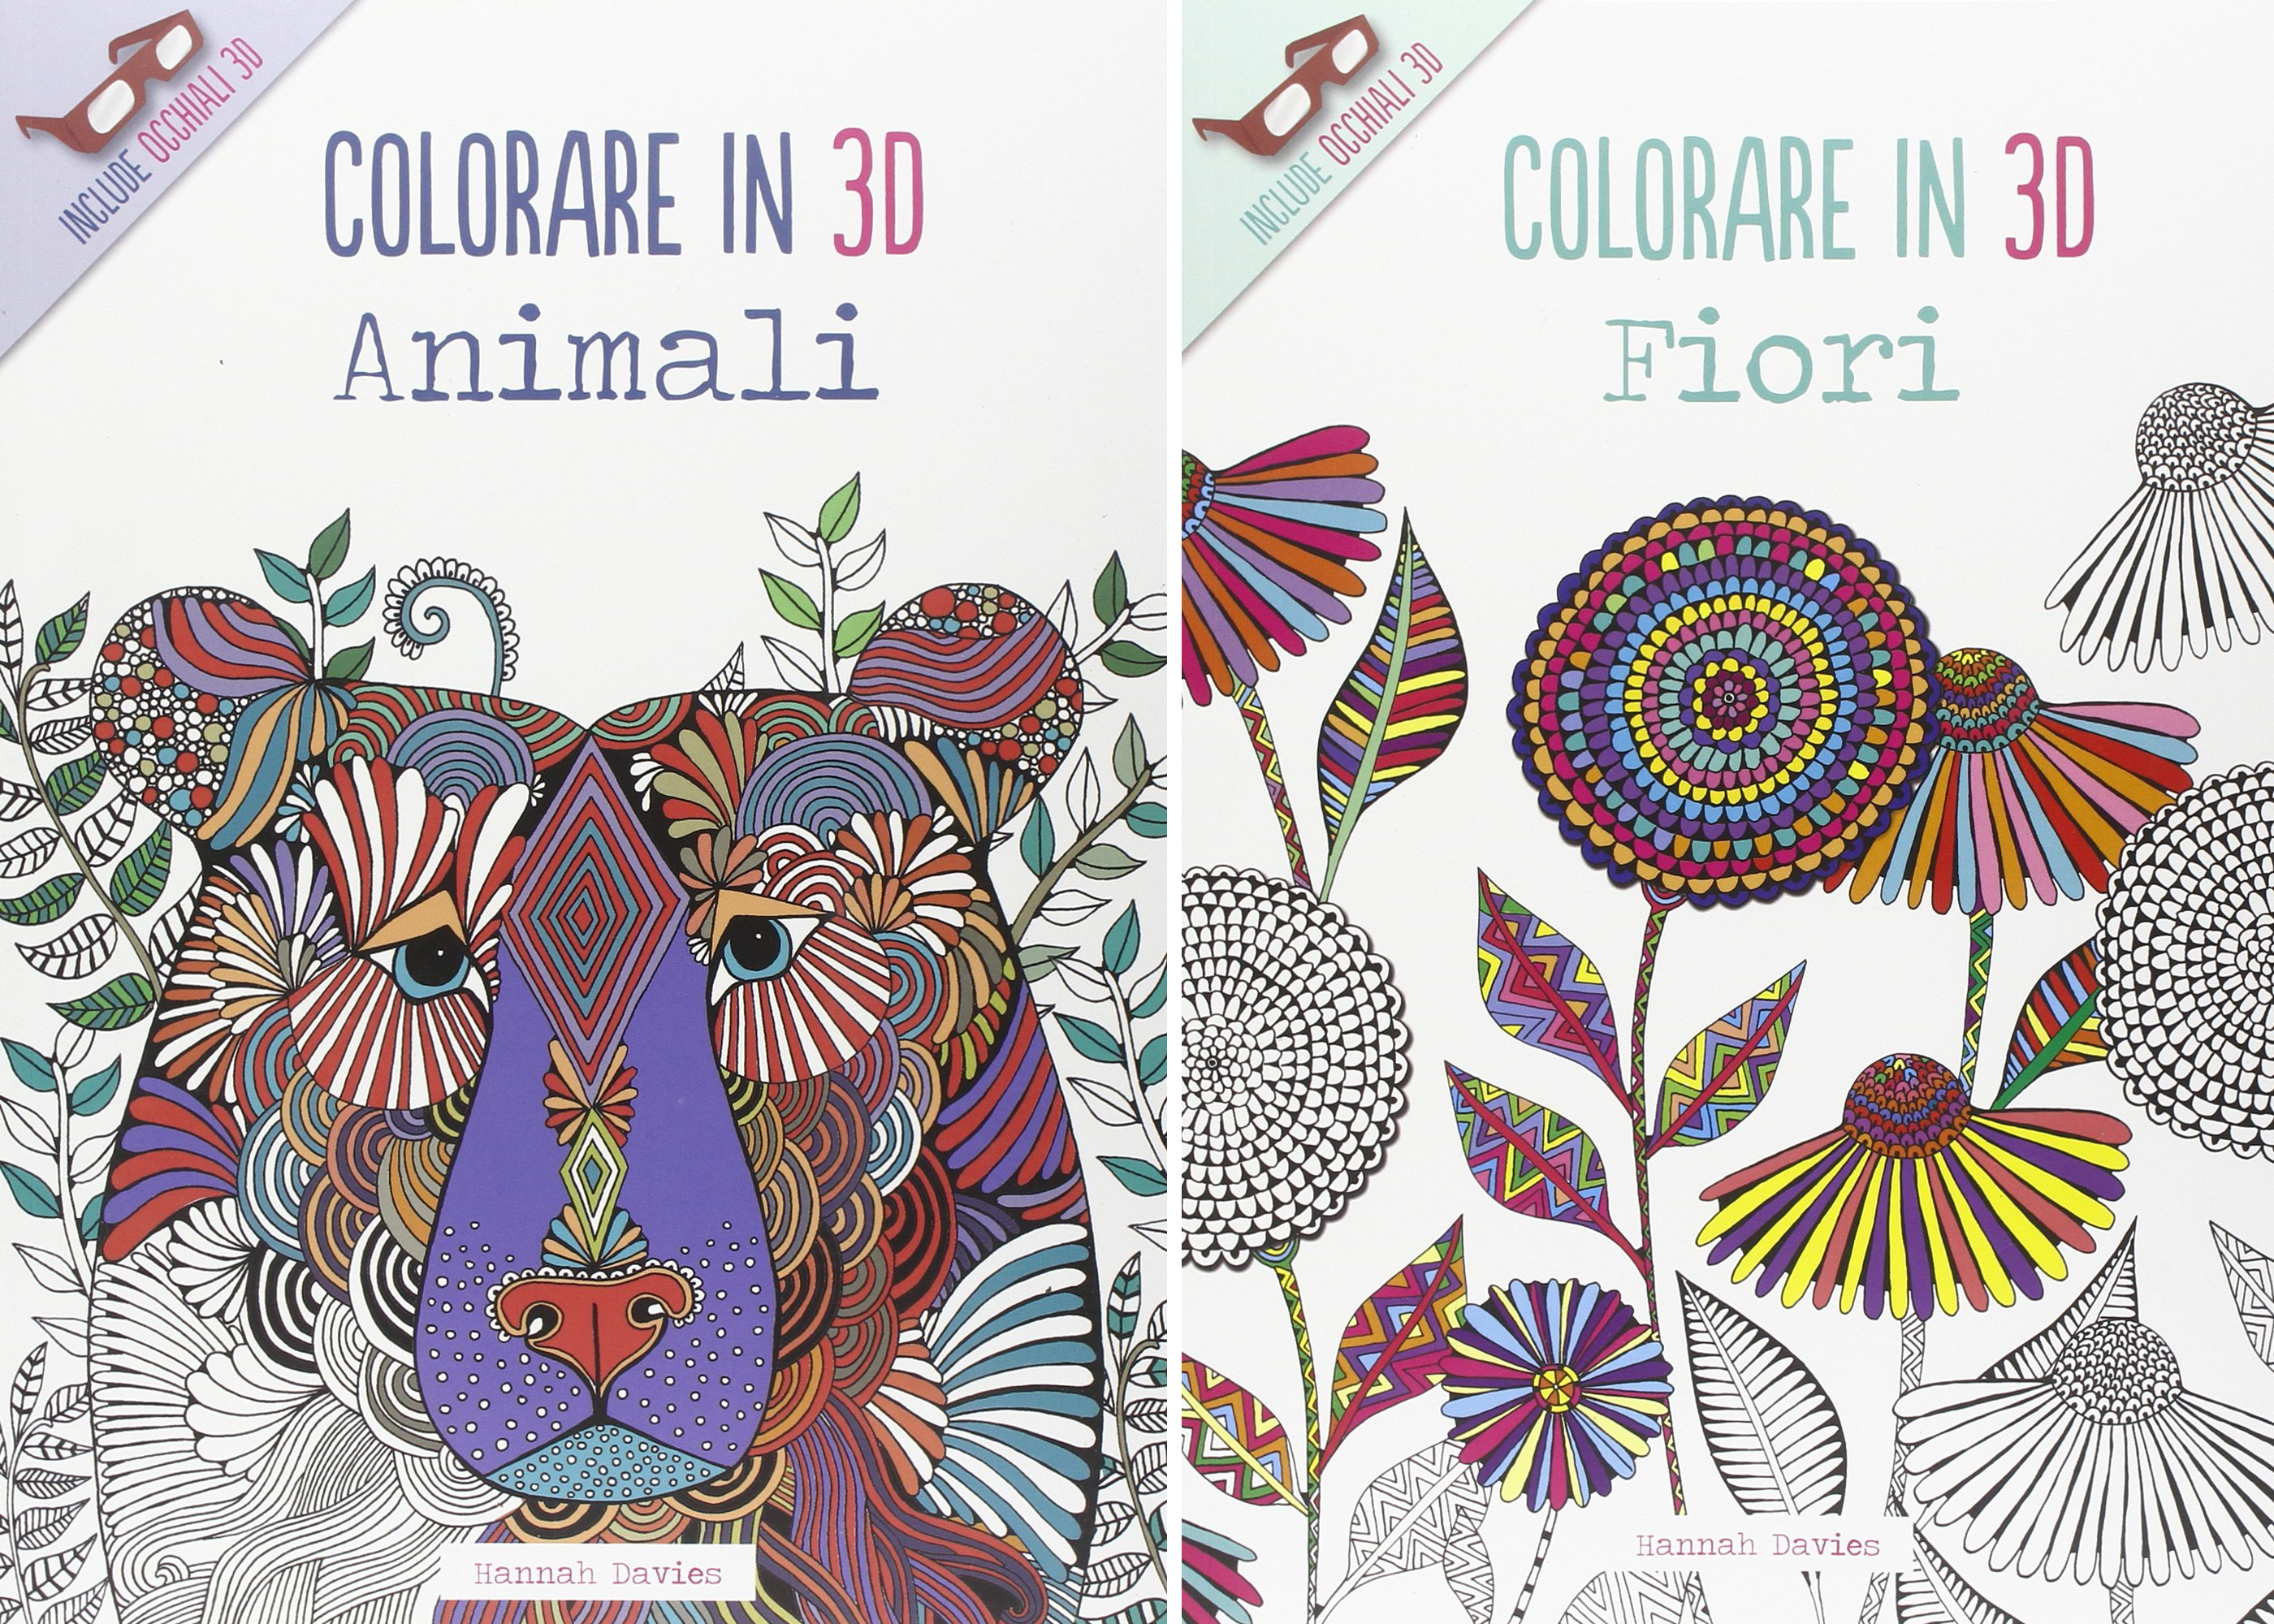 Art Theraphy, Coloring books, Arte, Colori, Libri, Relax, Libri da colorare